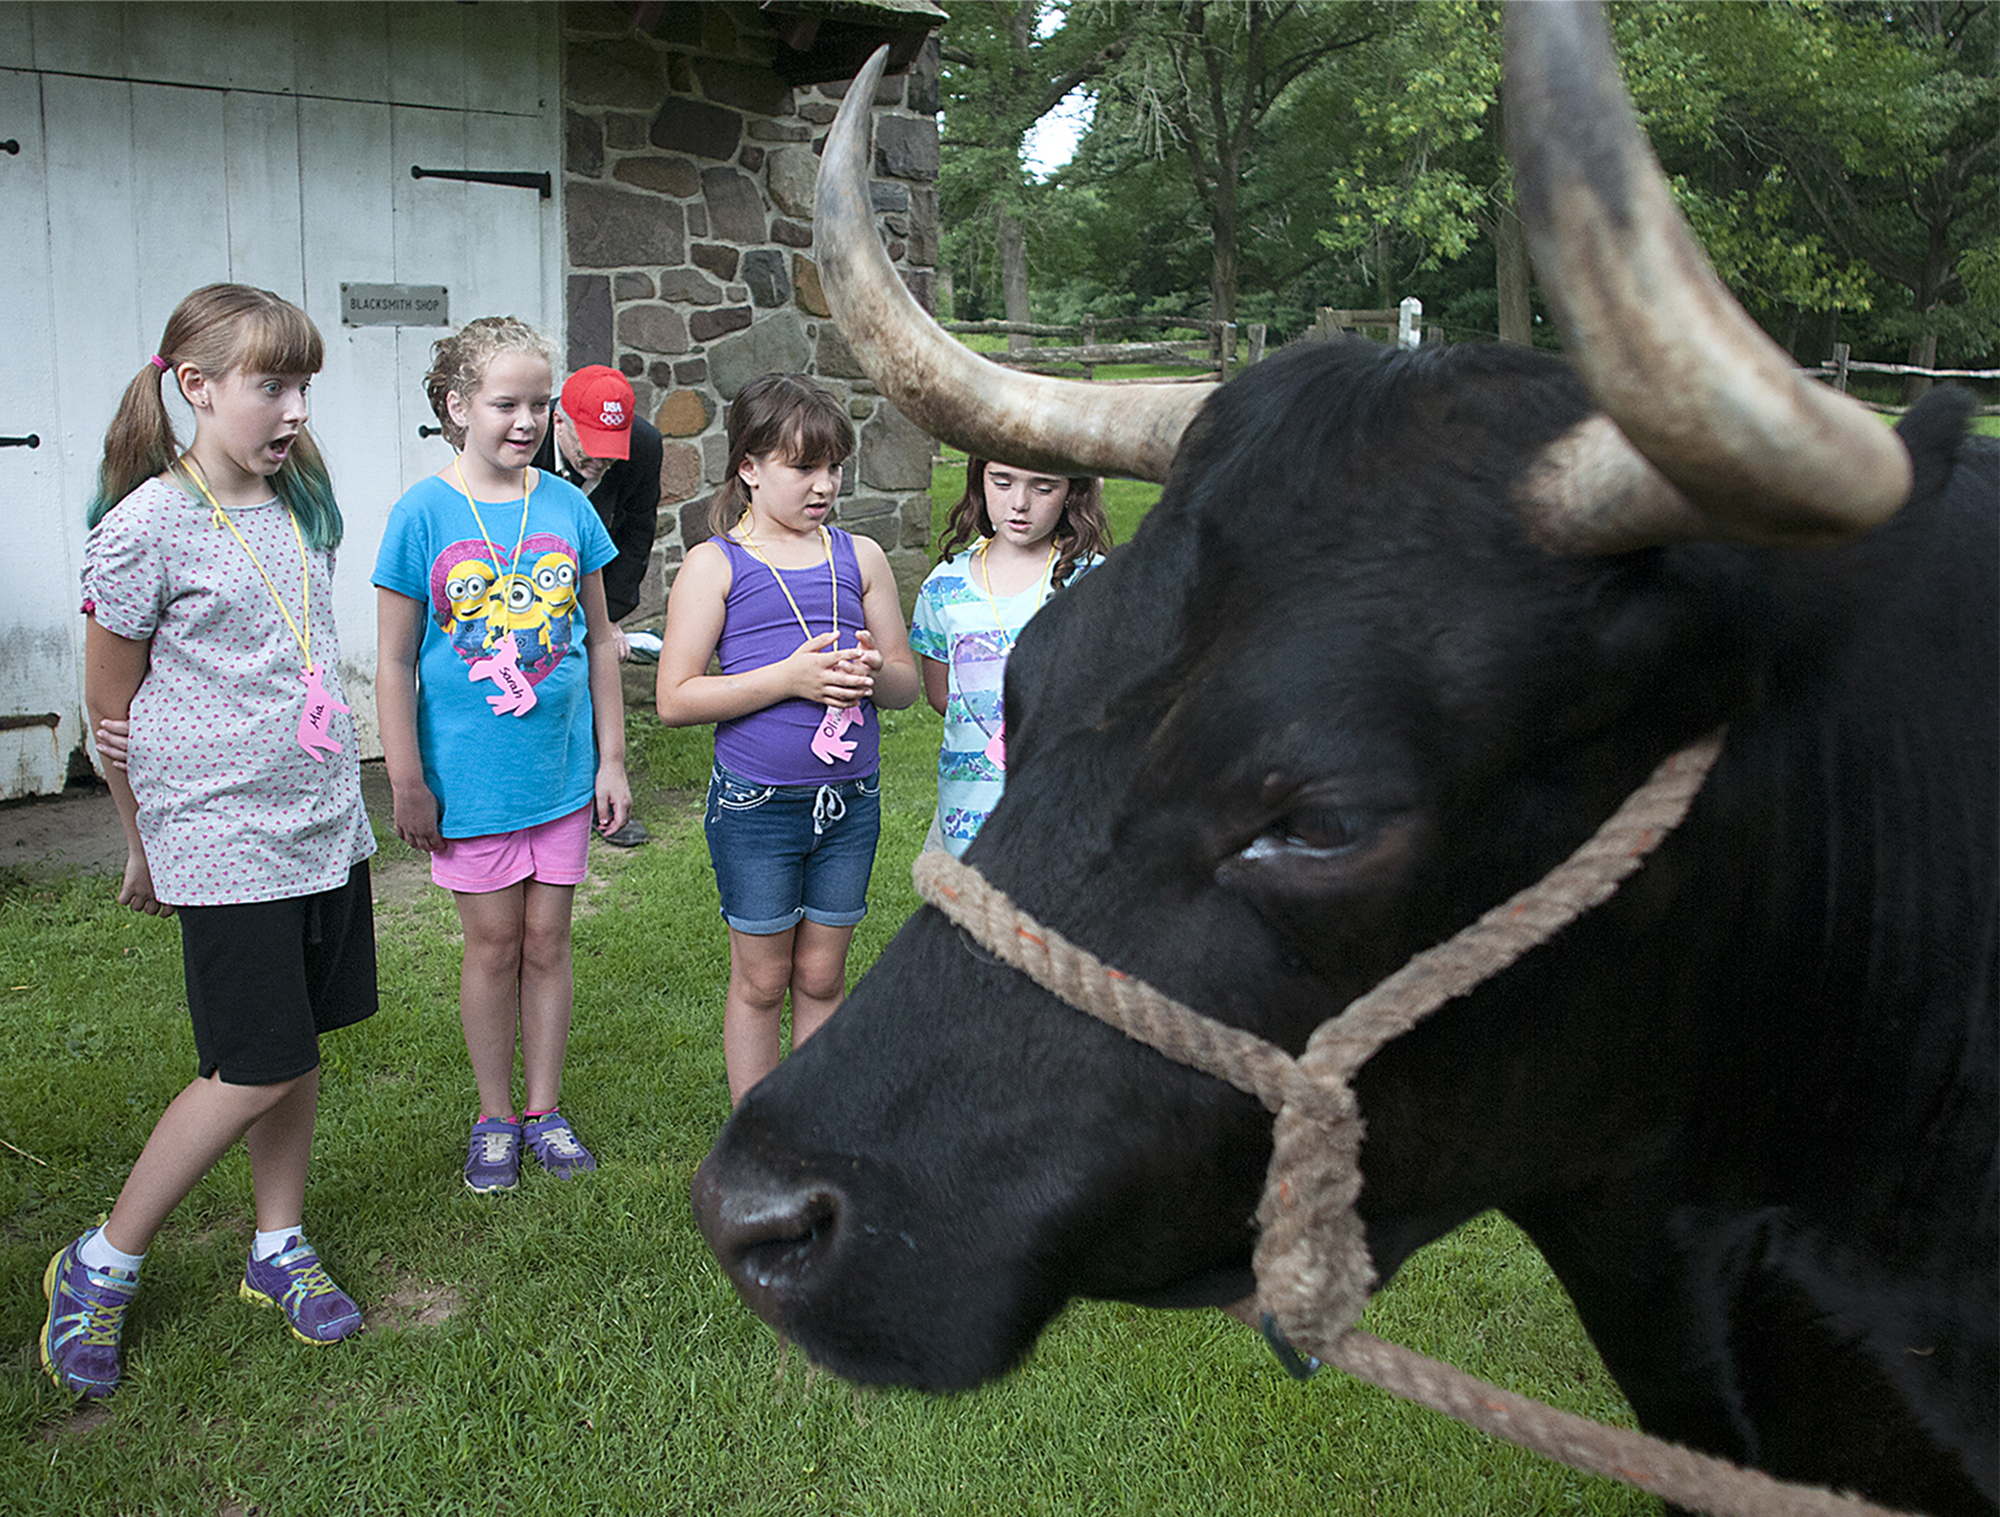 Camper Mia Feeley, 9, of Fairless Hills, watches wide-eyed as Bill the resident Dexter Steer trained as an ox relieves himself in the field as kids learn about life and animals during the Colonial era during camp at Pennsbury Manor on Tuesday, July 14, 2015.